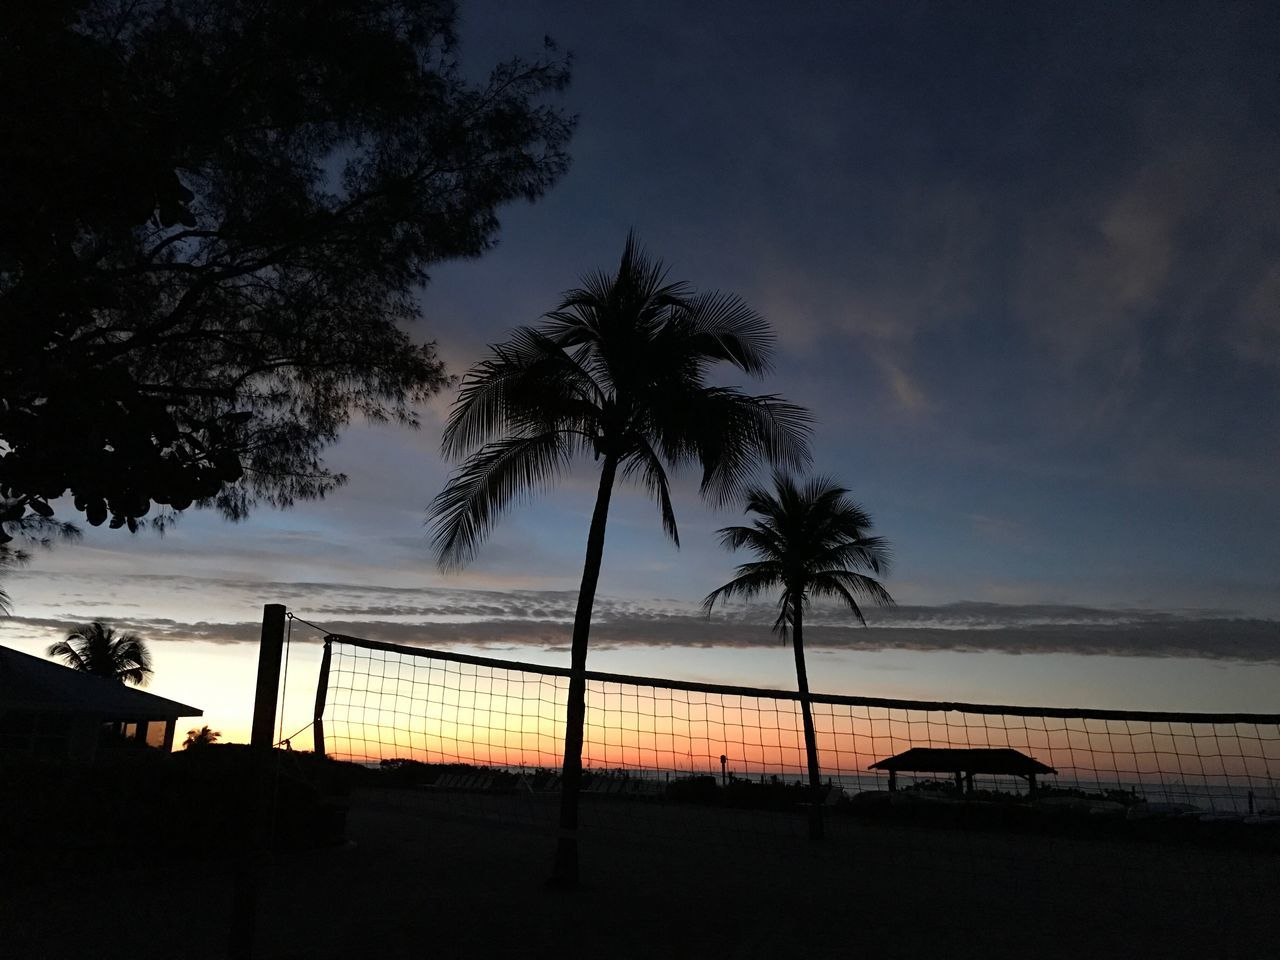 Palm Tree Tree Sky Beauty In Nature Sea Beach Scenics Nature Water Cloud - Sky Tranquility Silhouette Sunset Tranquil Scene Outdoors No People Tree Trunk Horizon Over Water Day Beach Volleyball